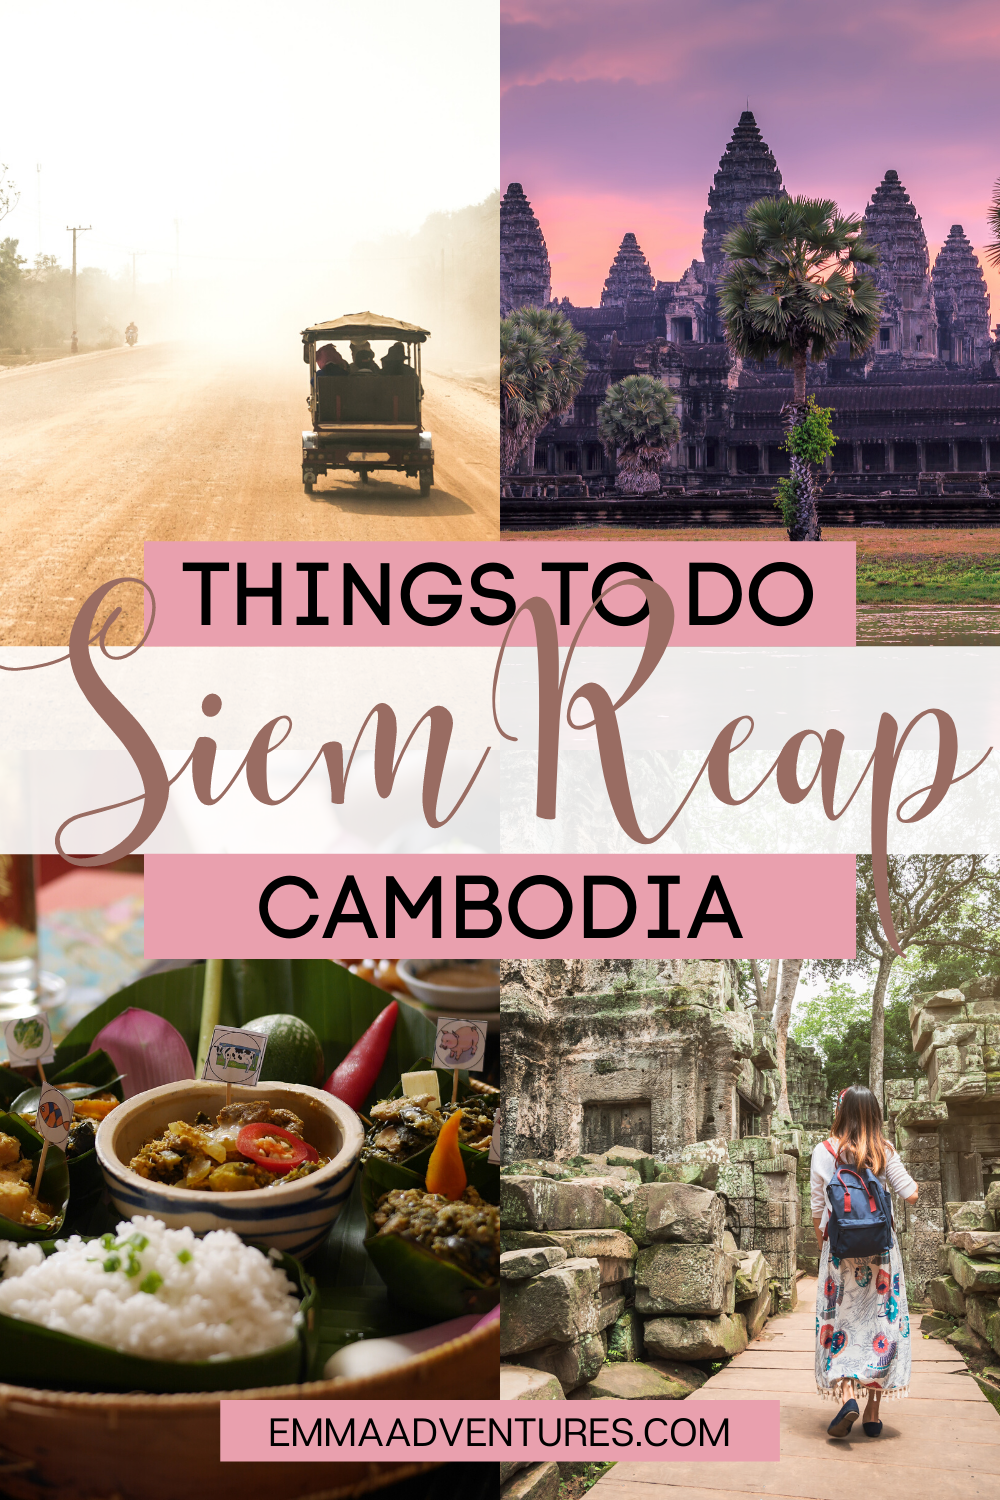 The best things to do in Siem Reap, Cambodia! Your ultimate travel guide to Siem Reap, Cambodia! What to do in Siem Reap, best things to do in Siem Reap, where to go in Siem Reap, where to eat in Siem Reap, where to stay in Siem Reap, Siem Reap travel guide. #siemreap #cambodia #southeastasia